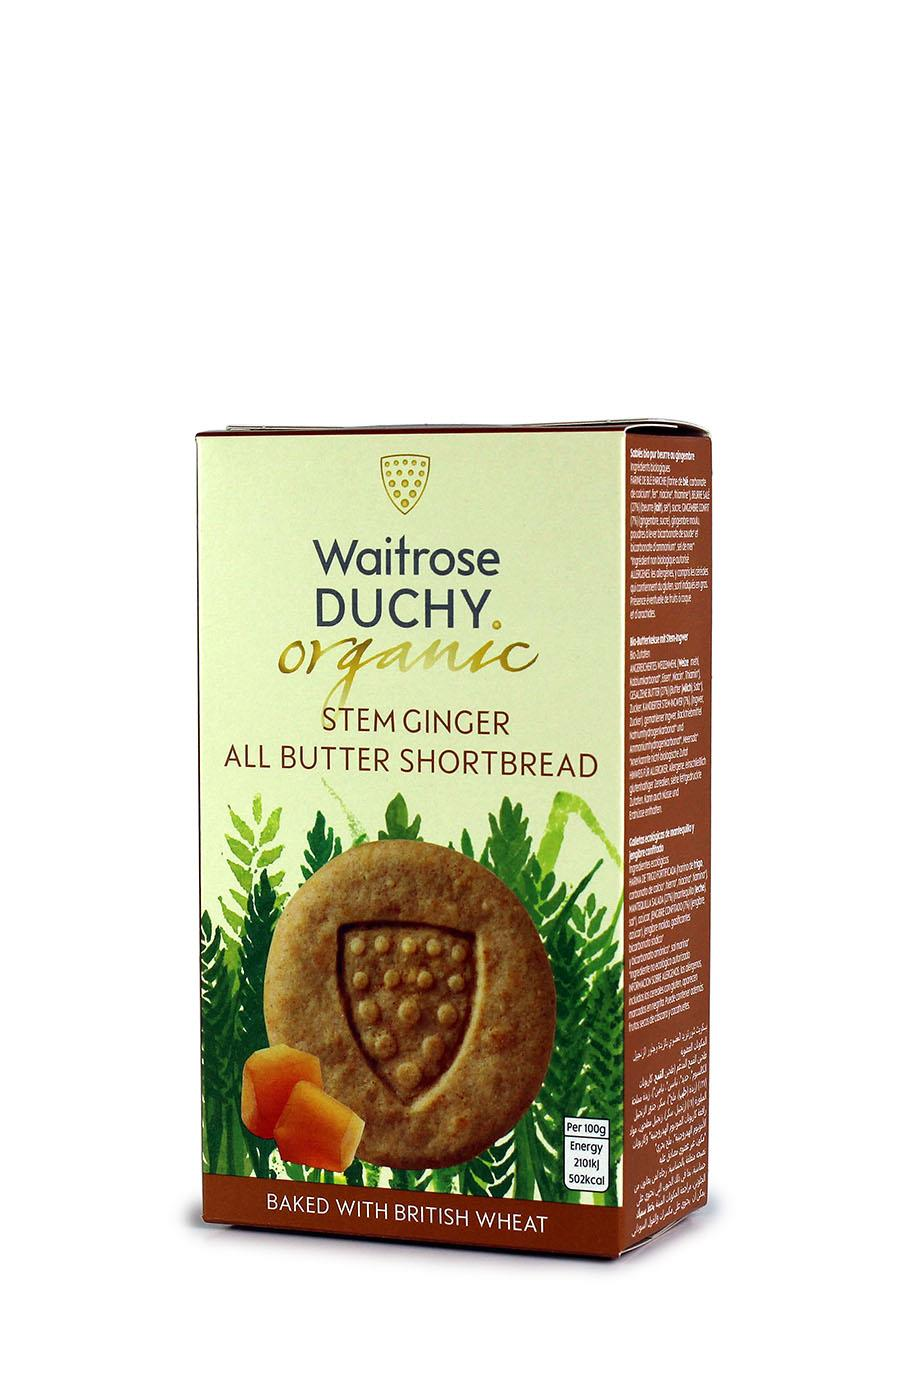 Waitrose Duchy organic stem ginger all butter shortbread